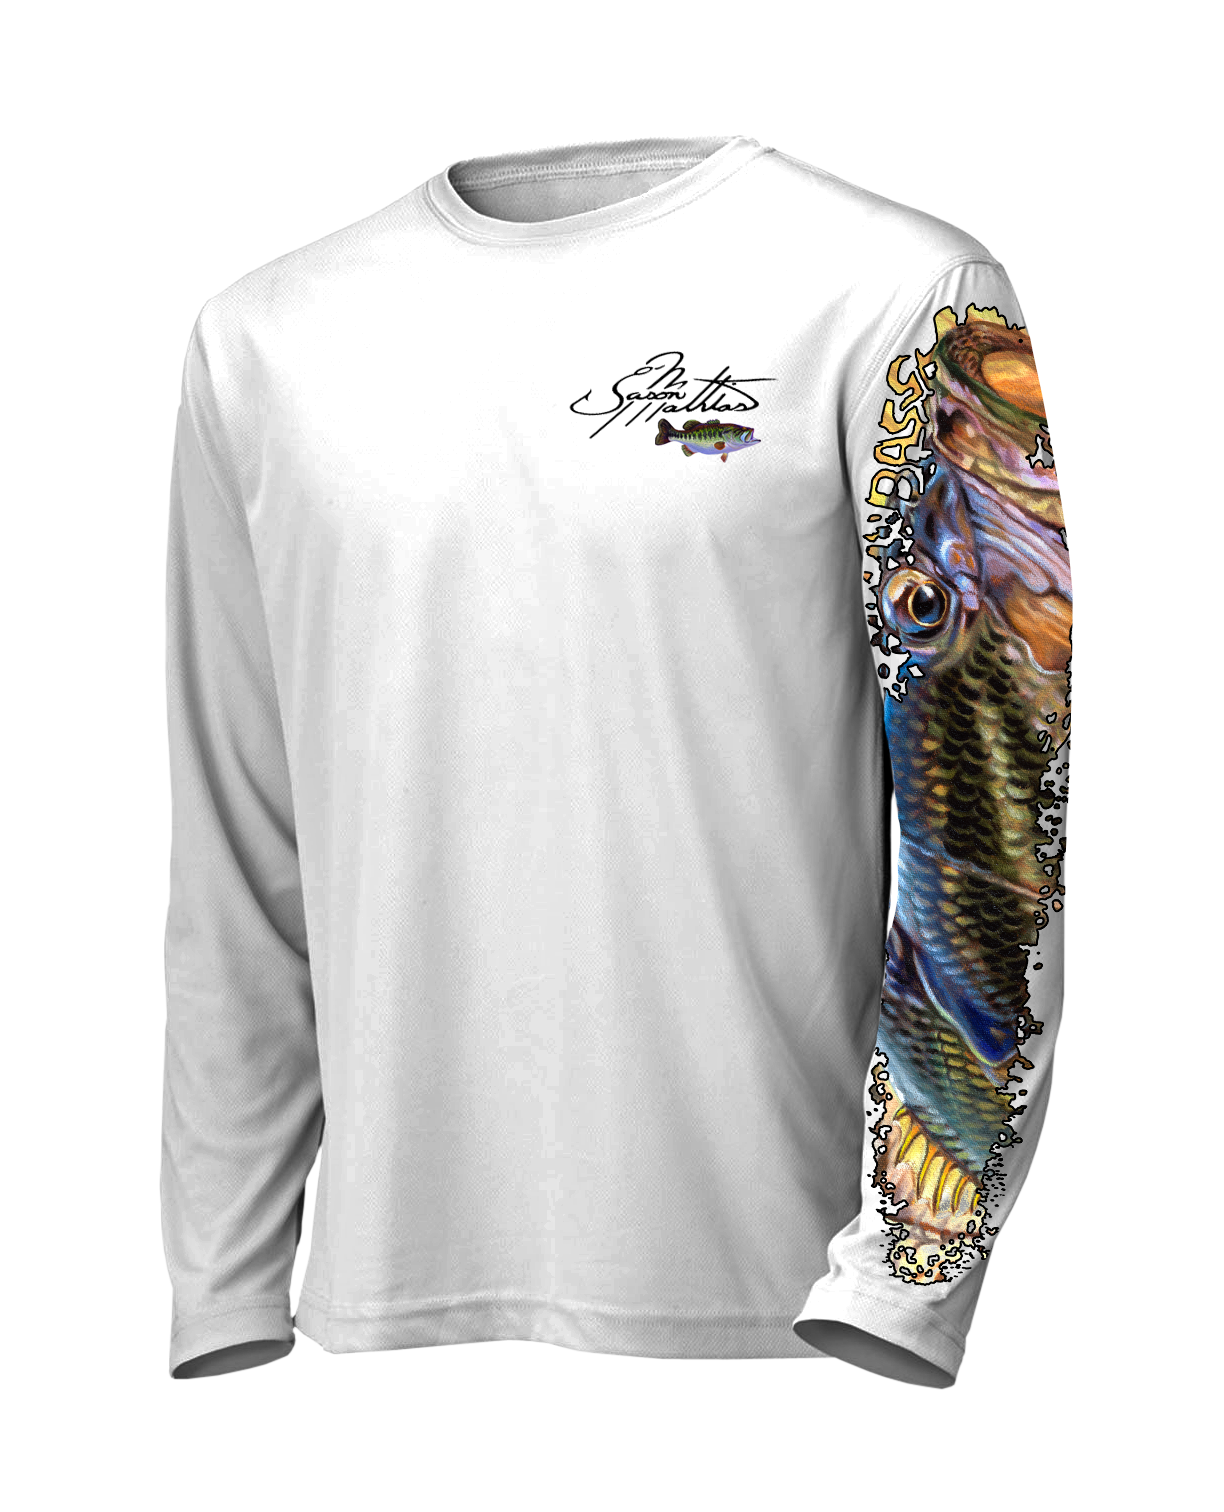 jason-mathias-large-mouth-bass-white-t-shirt-high-performance-gear-and-wear.png